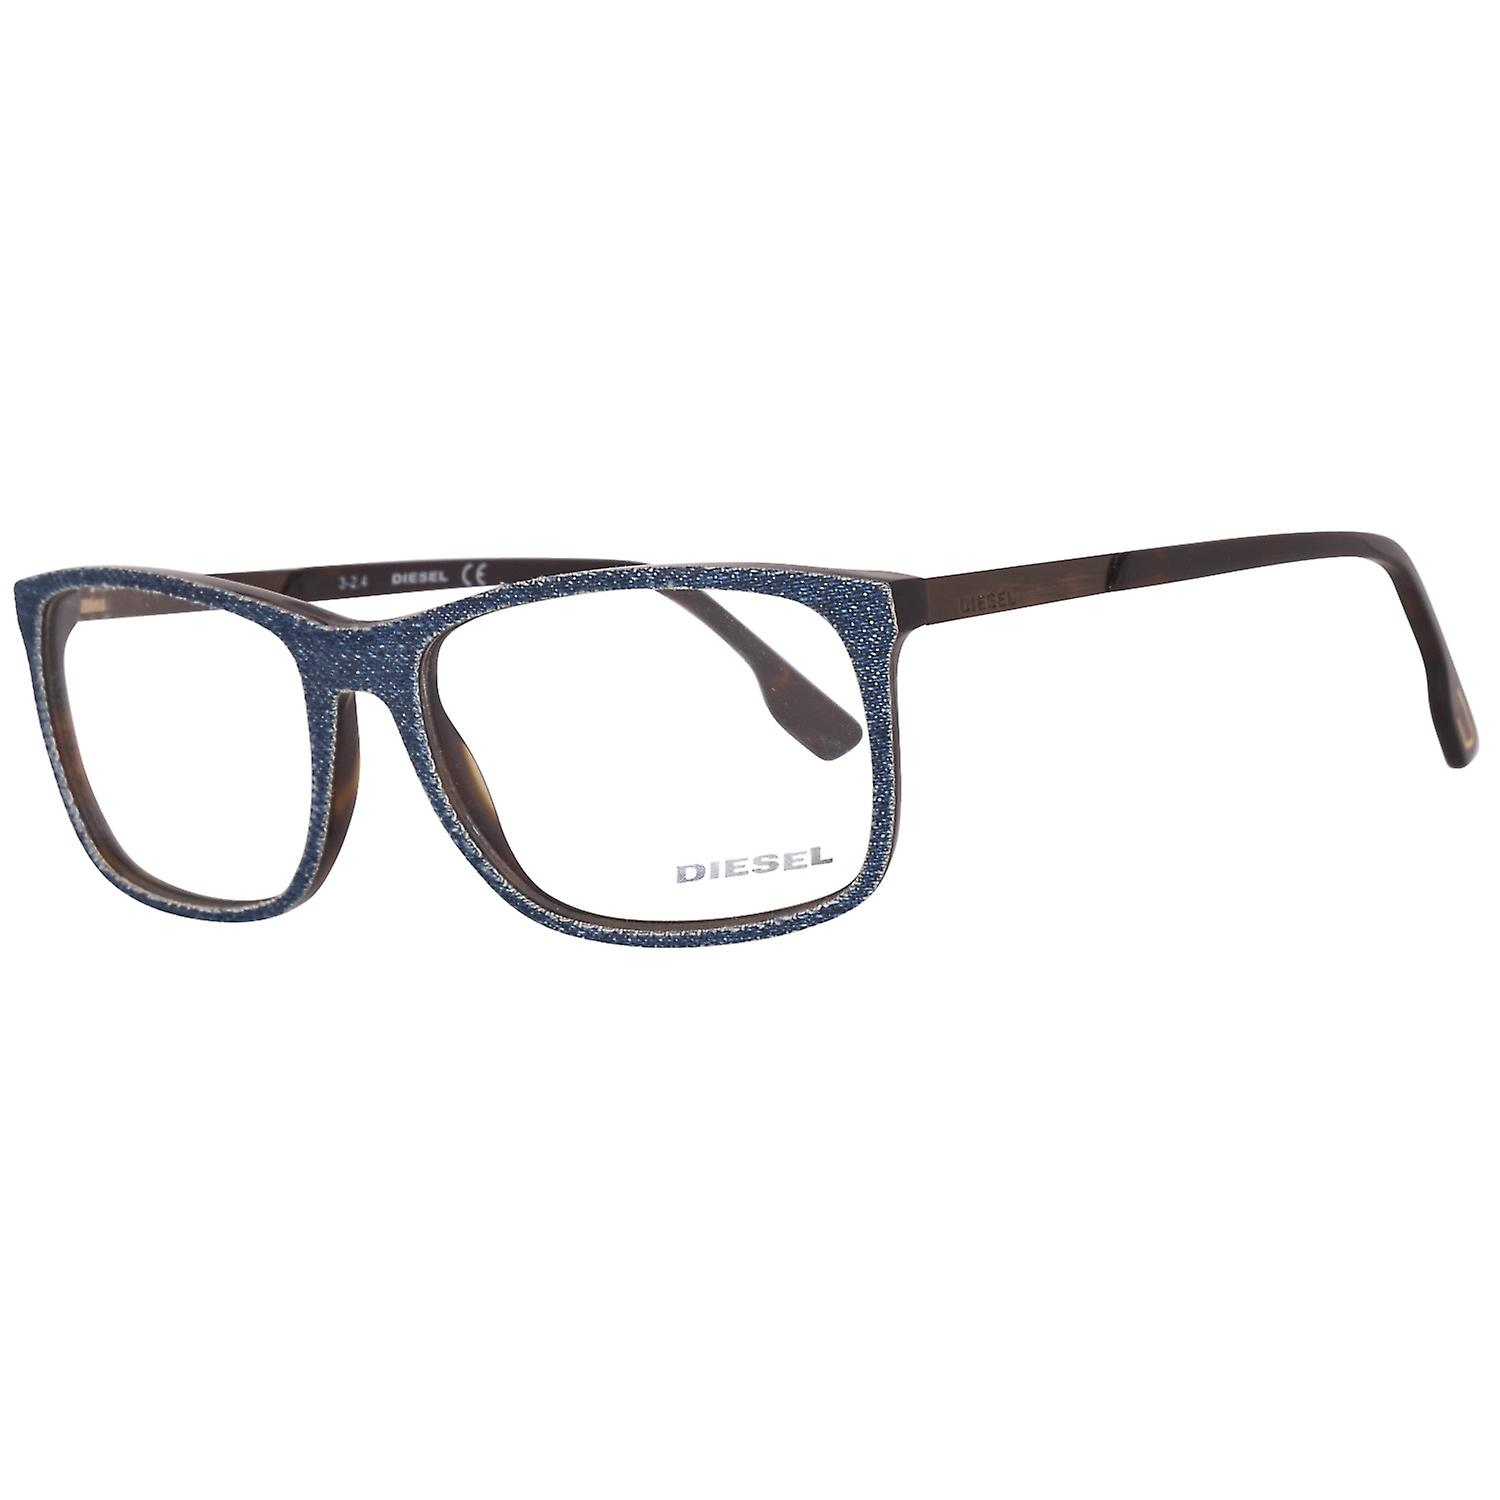 2a87bf9422 Diesel glasses blue